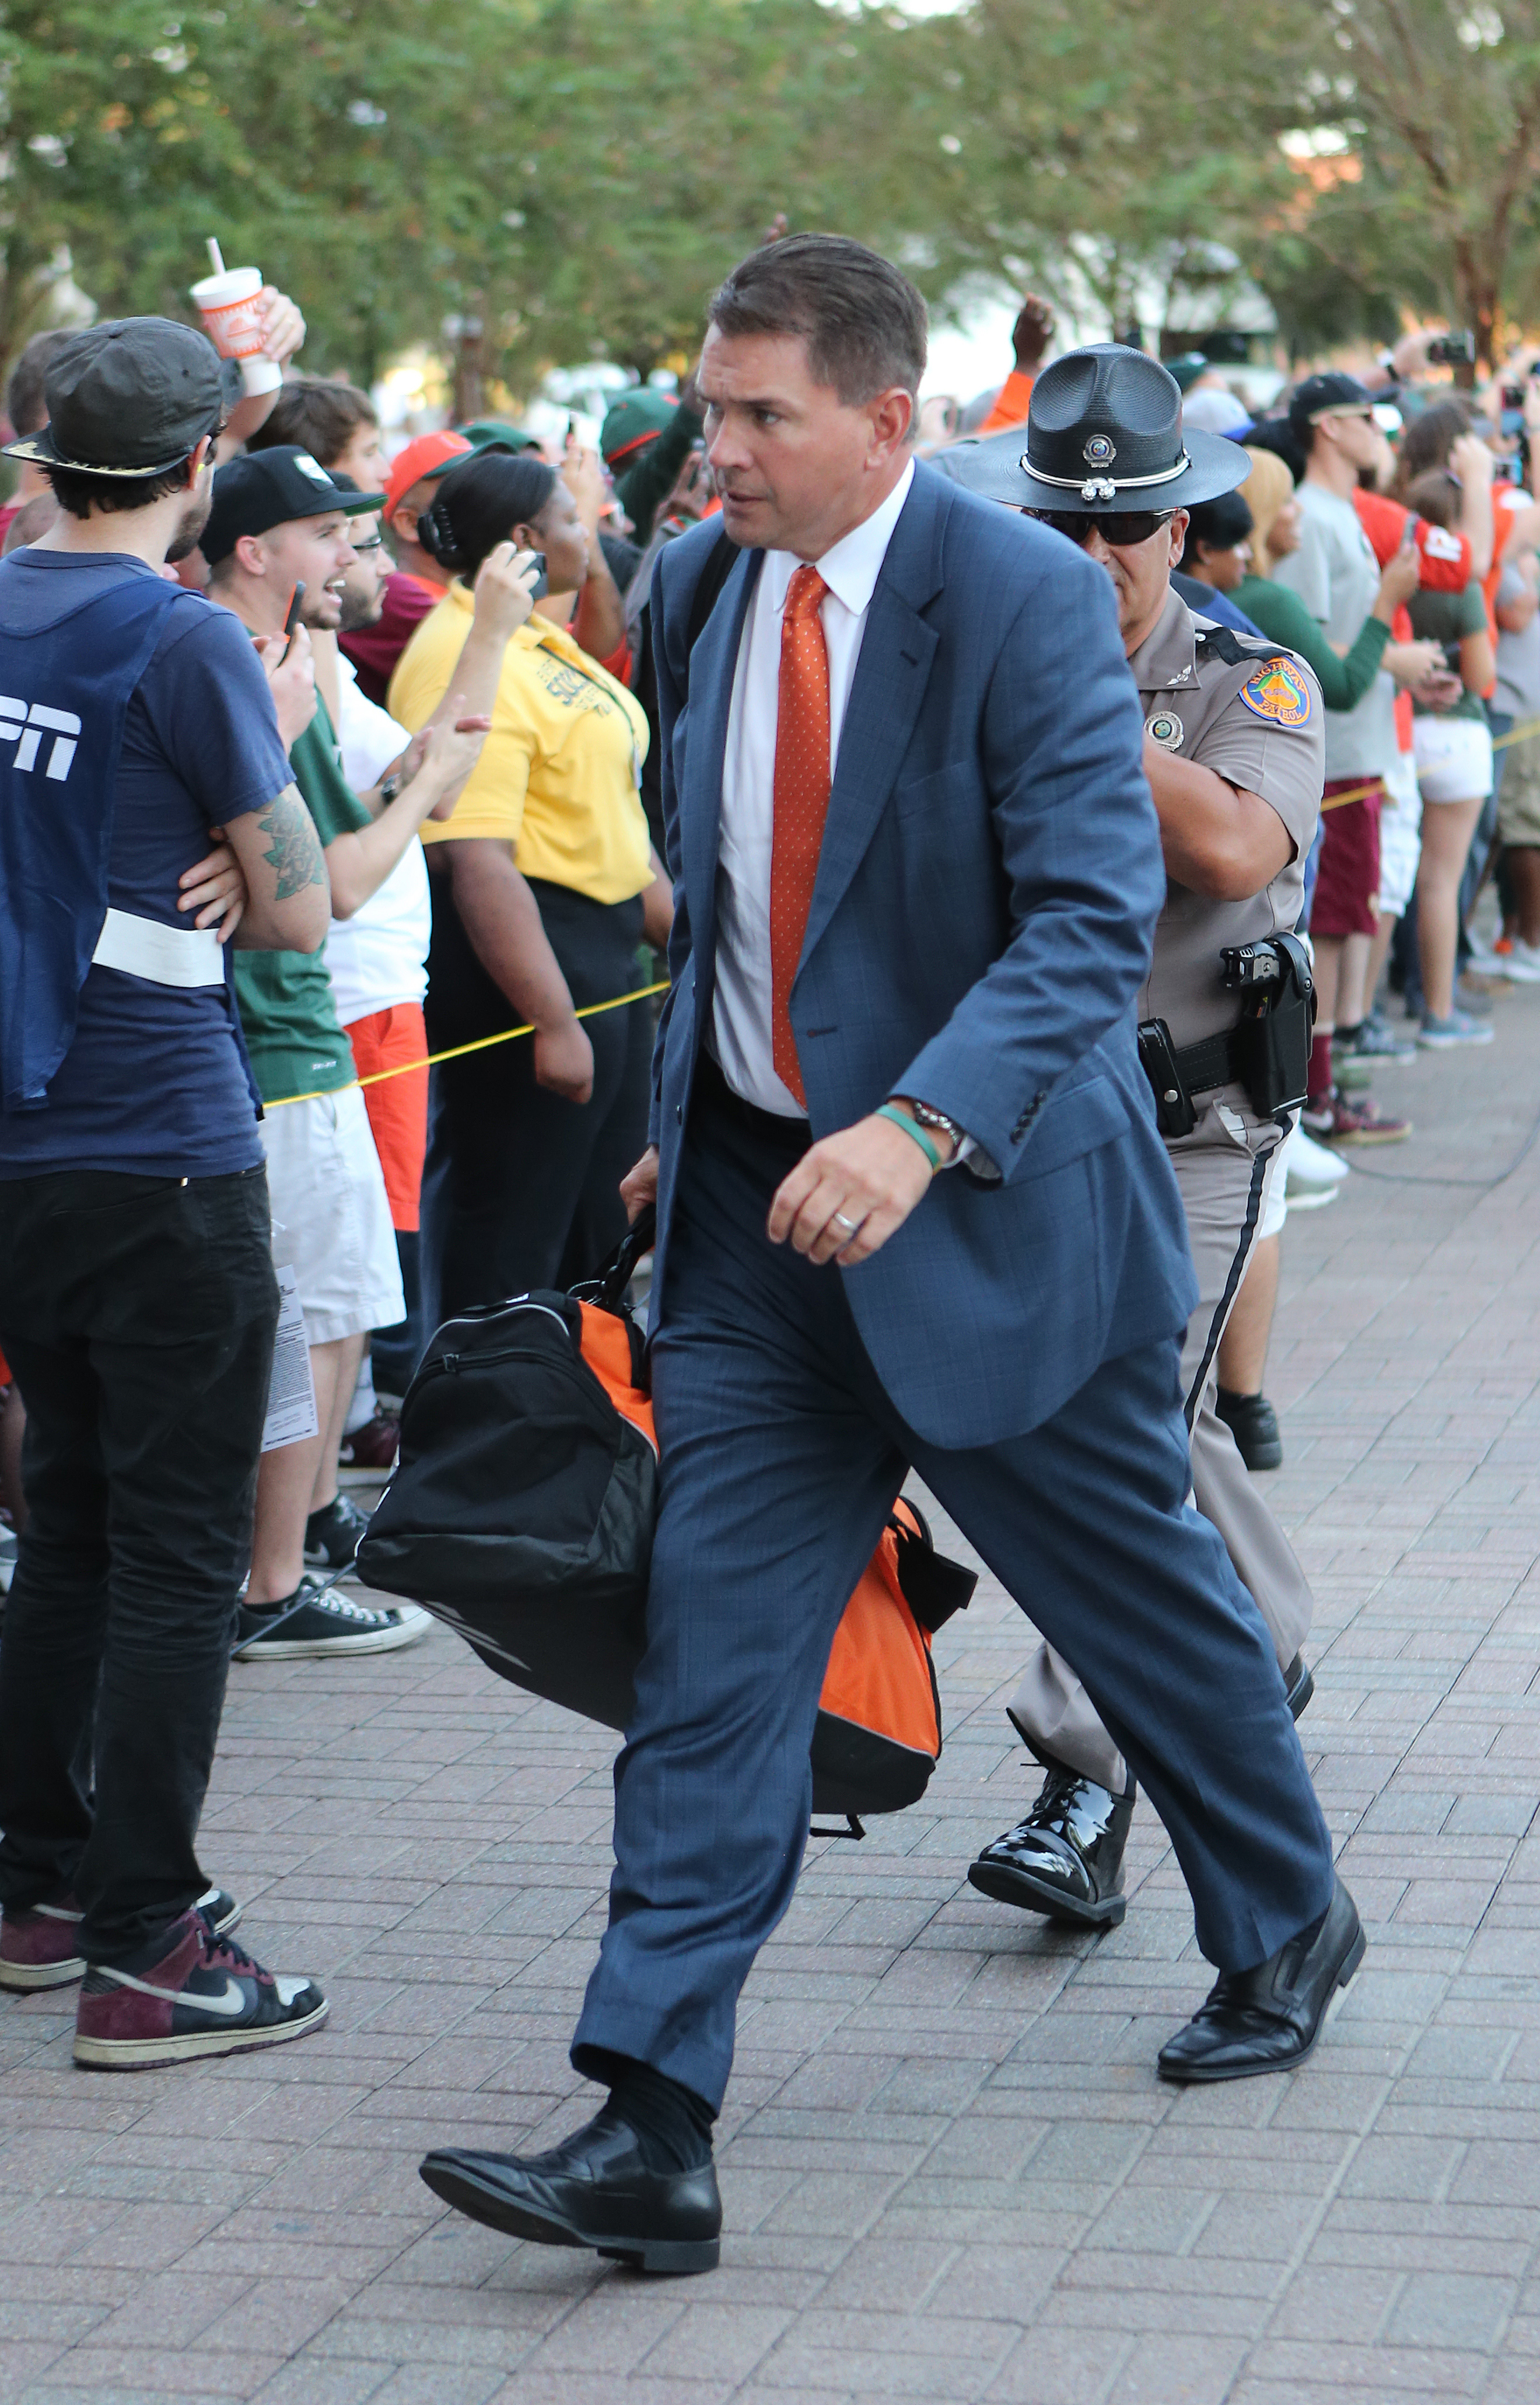 Miami's head coach Al Golden leads his team into Doak Campbell Stadium prior to the start of an NCAA college football game with Florida State, Saturday, Oct. 10, 2015 in Tallahassee, Fla. (AP Photo/Steve Cannon)